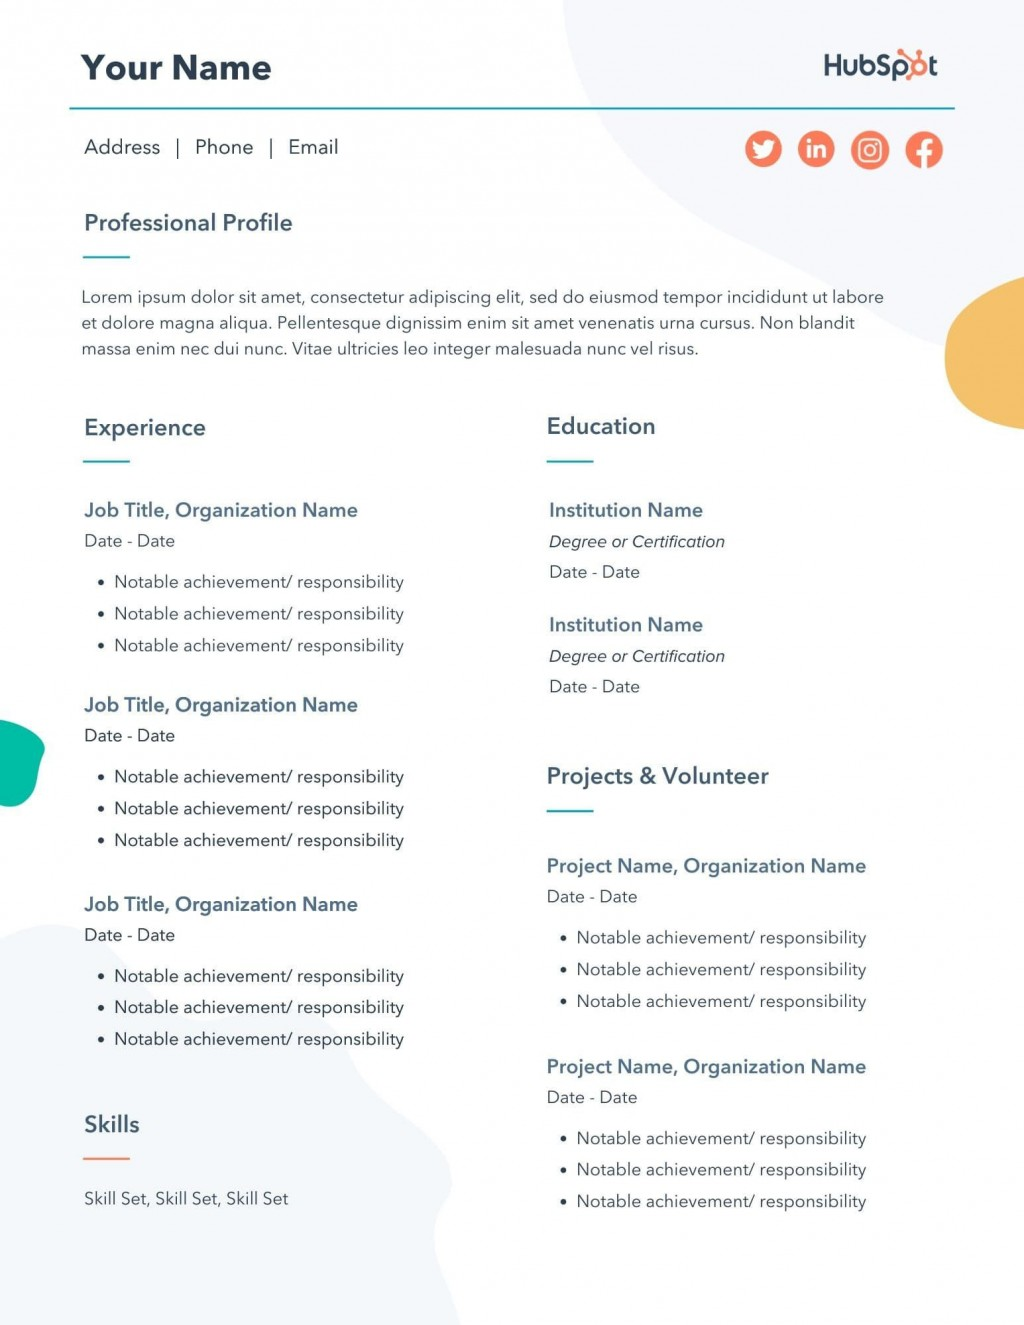 006 Archaicawful Word Template For Resume Example  Resumes M Free Best Document DownloadLarge